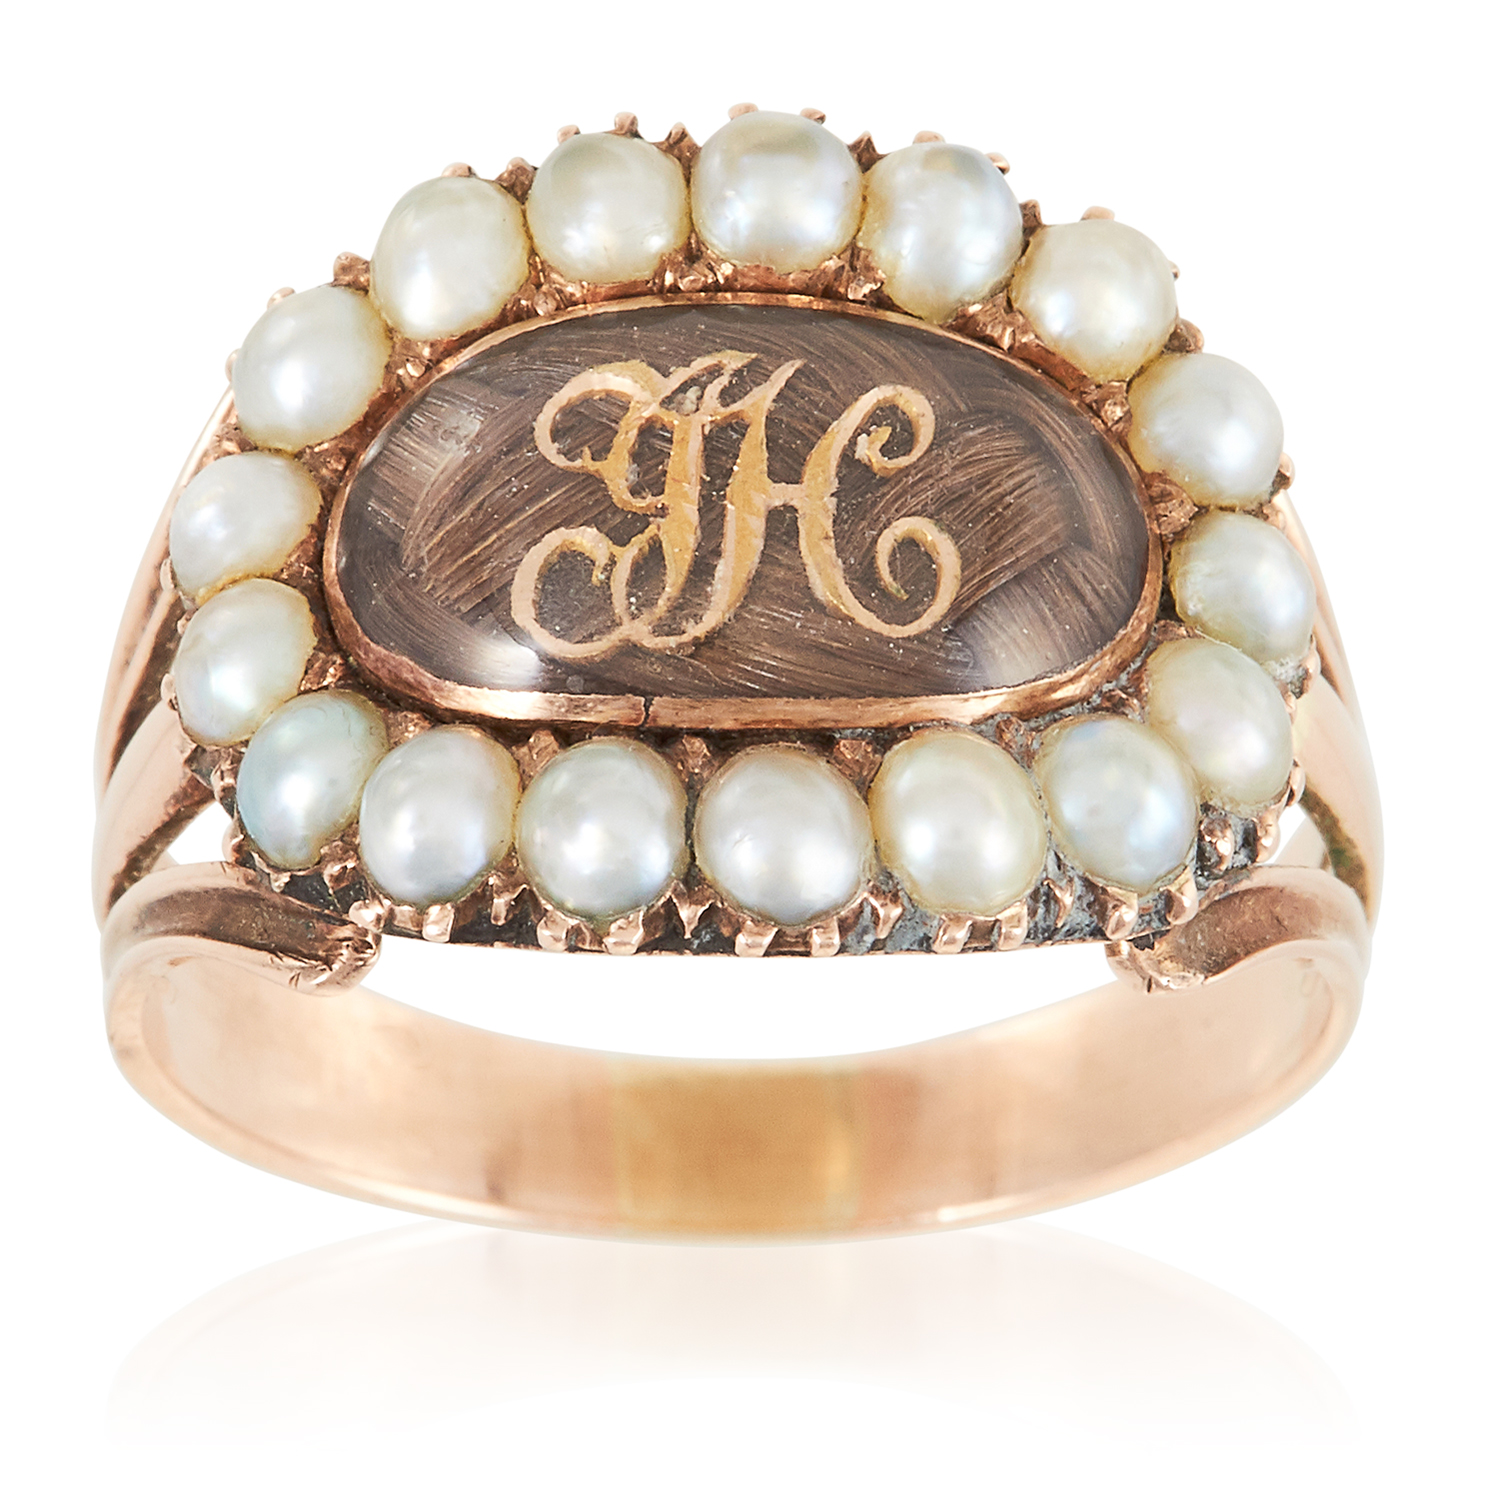 Los 10 - AN ANTIQUE GEORGIAN HAIRWORK AND PEARL MOURNING RING, EARLY 19TH CENTURY in high carat yellow